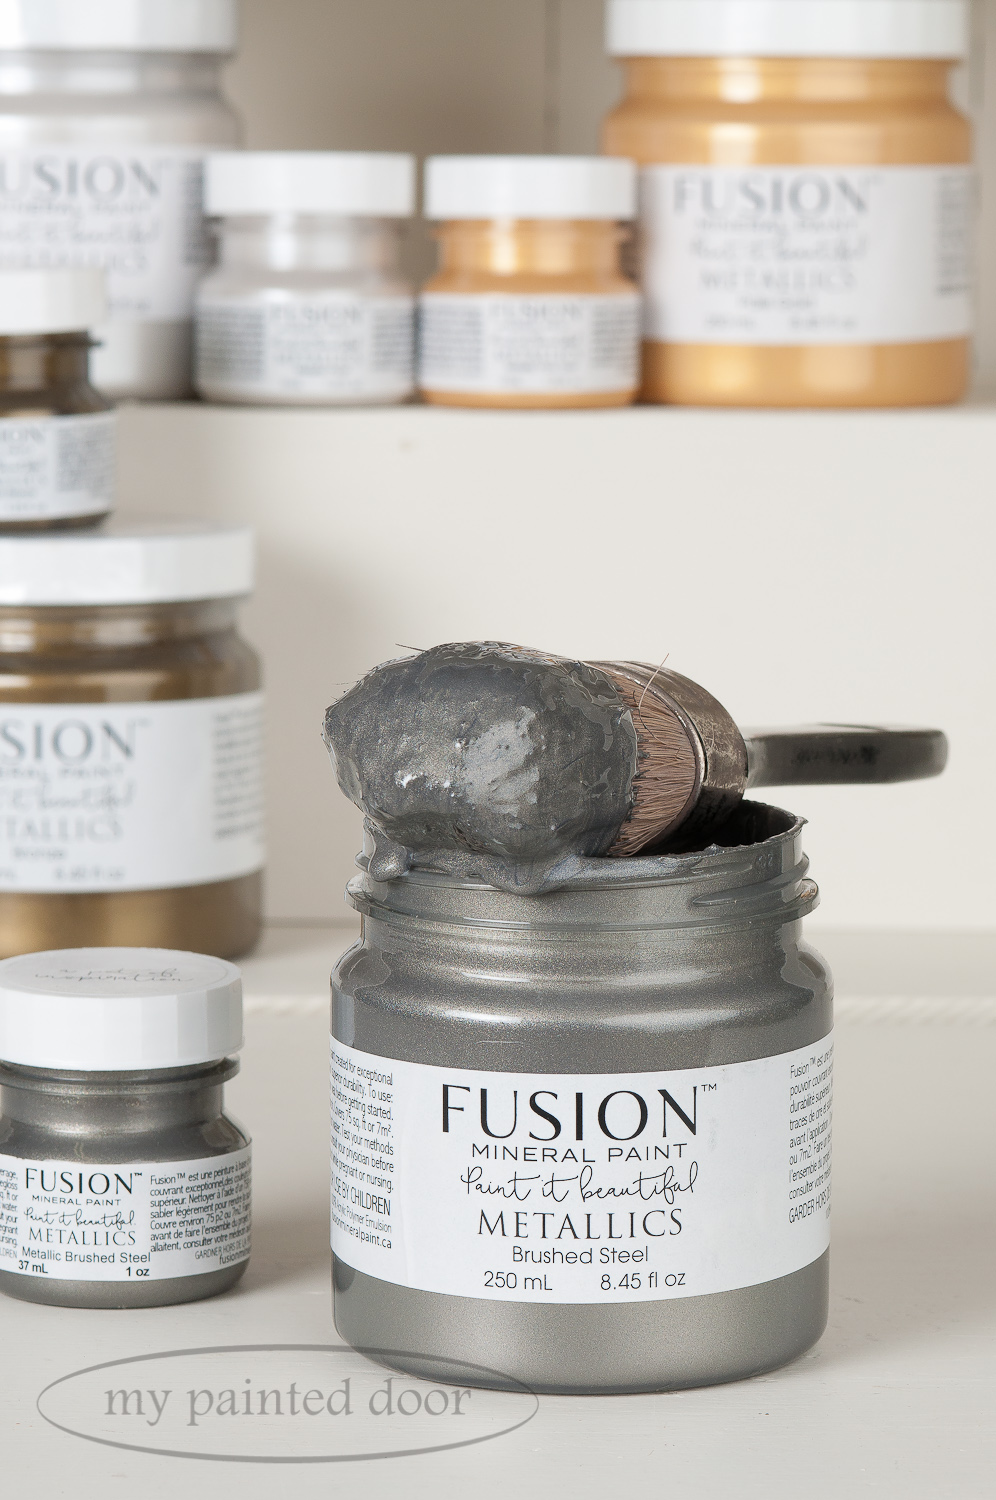 Fusion Mineral Paint Brushed Steel Metallic Paint.